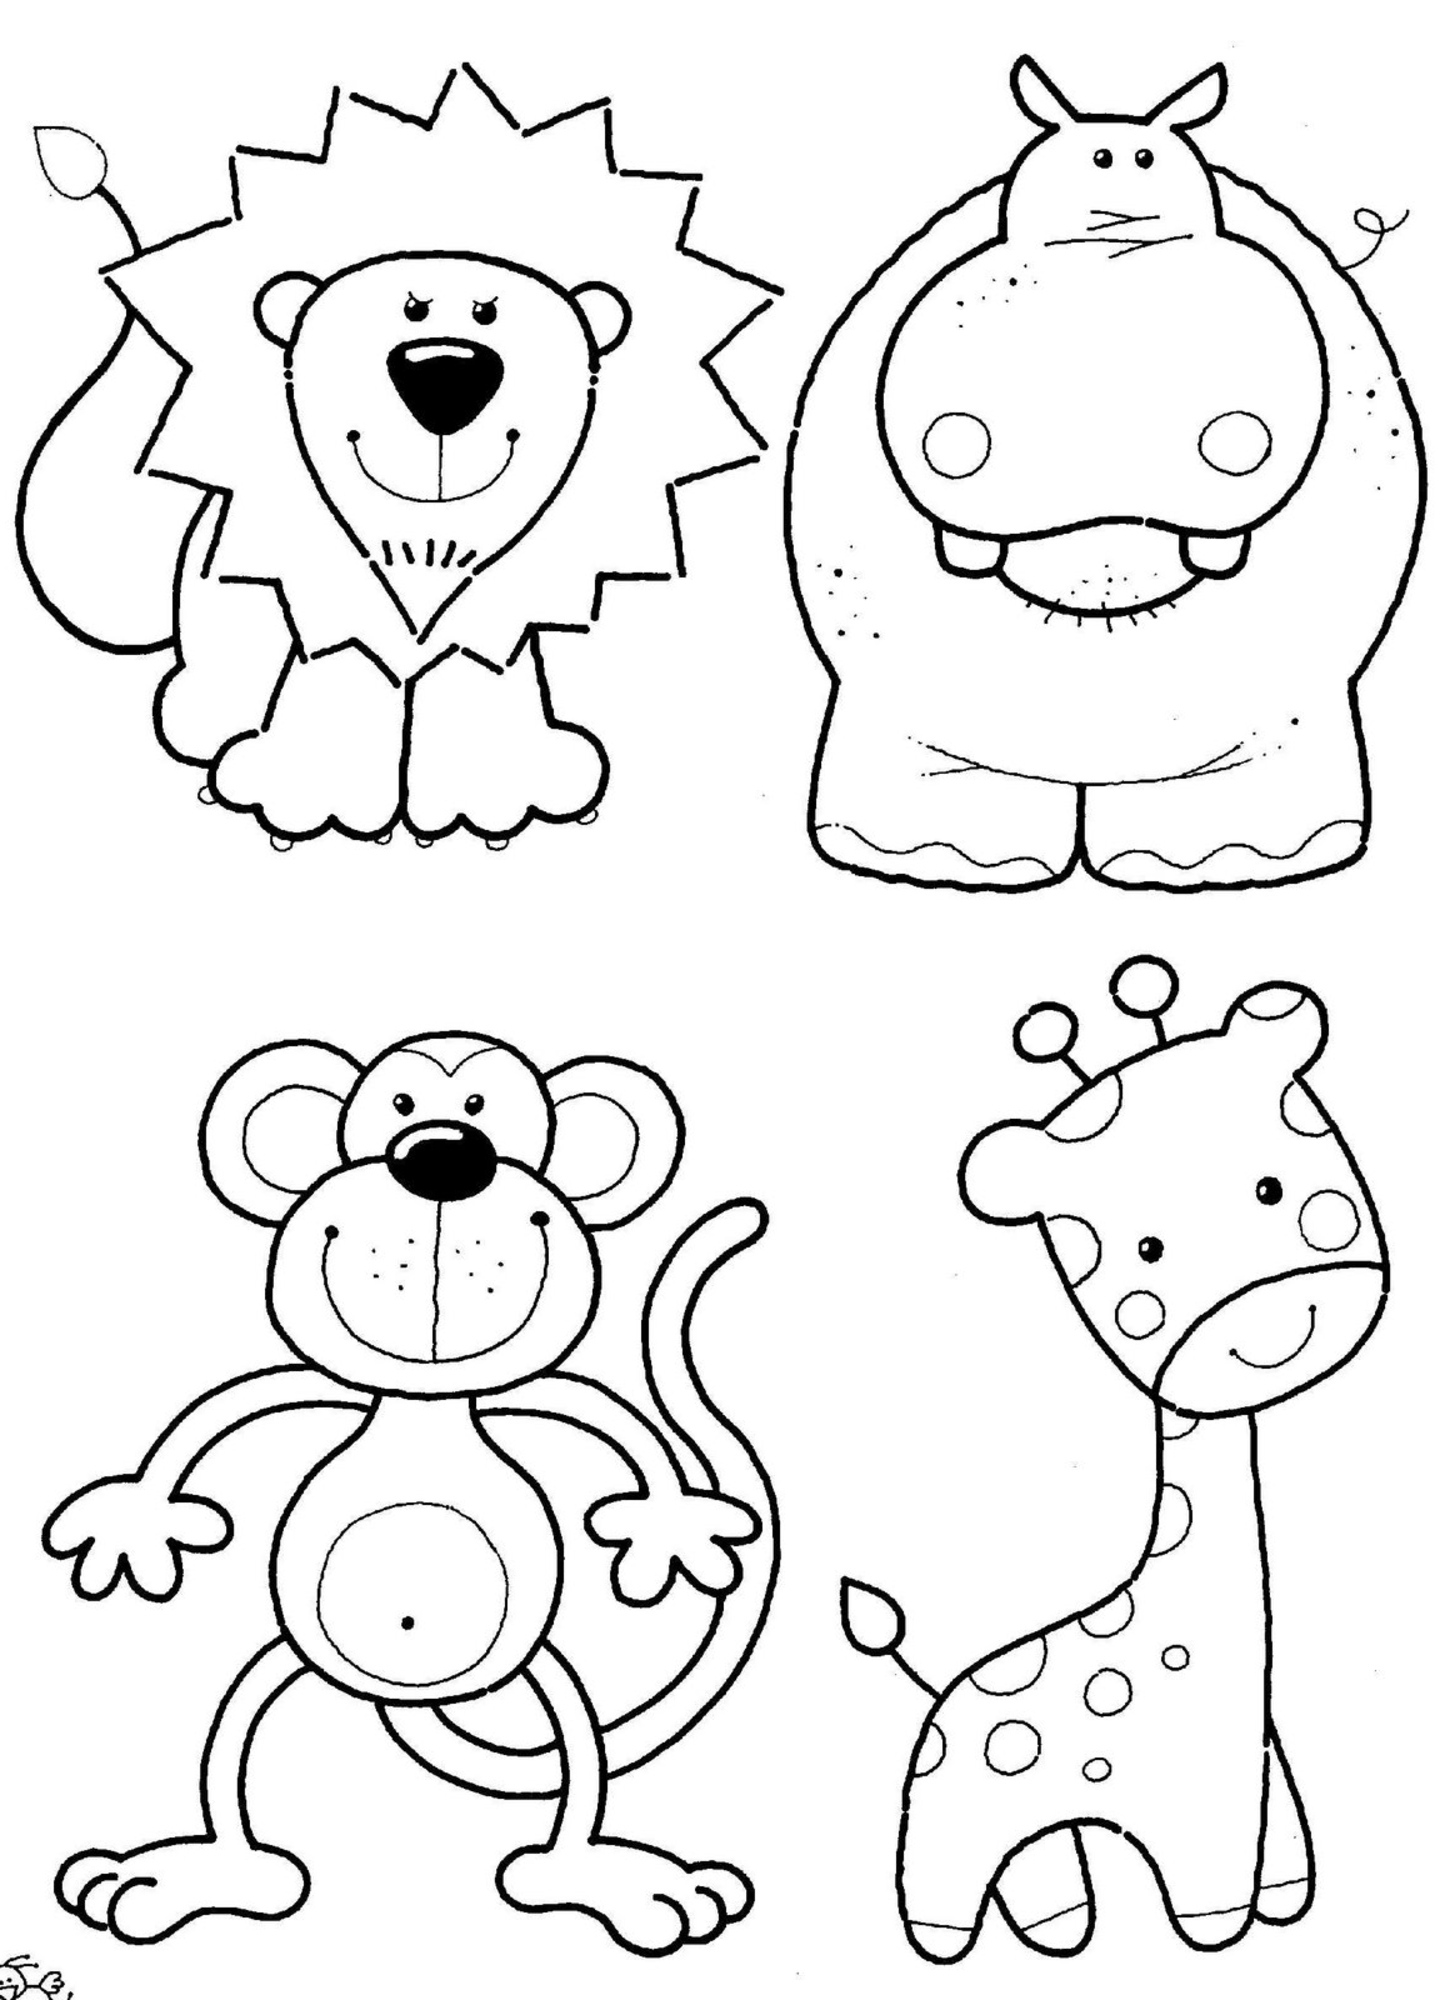 cute animals to colour in 30 inspiration image of cute animal coloring pages animals colour cute to in